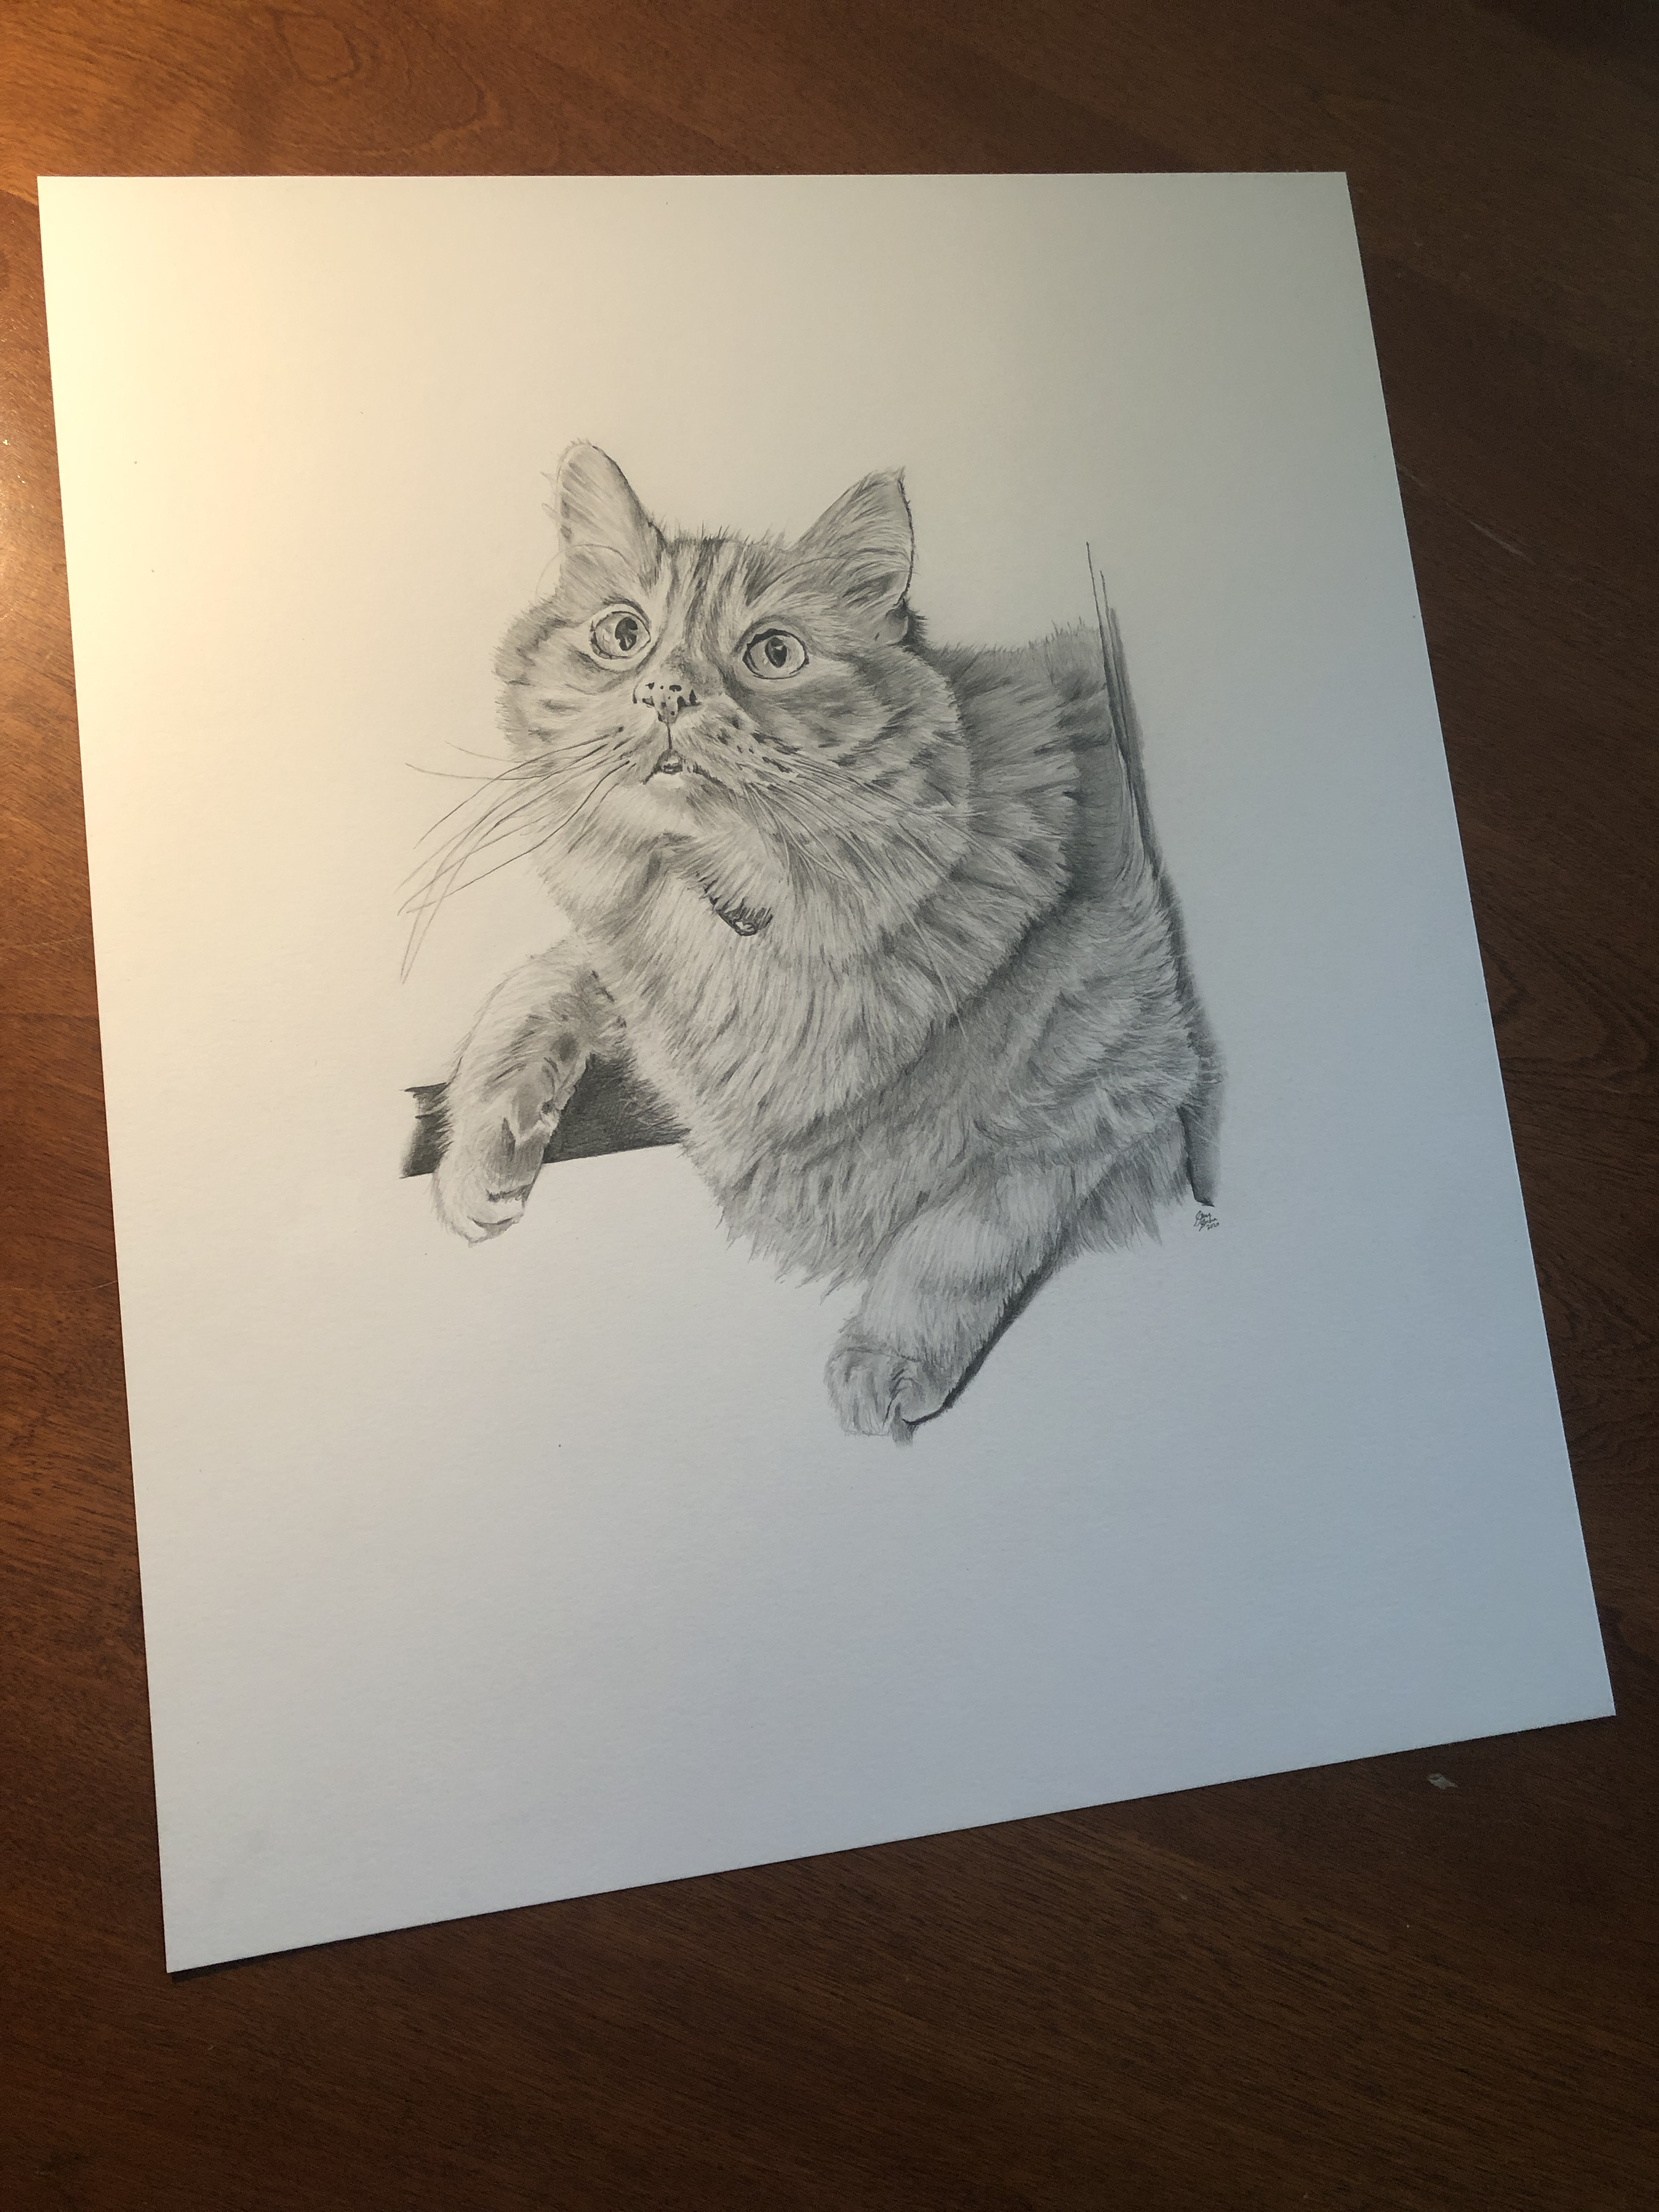 dewey cat drawing on table